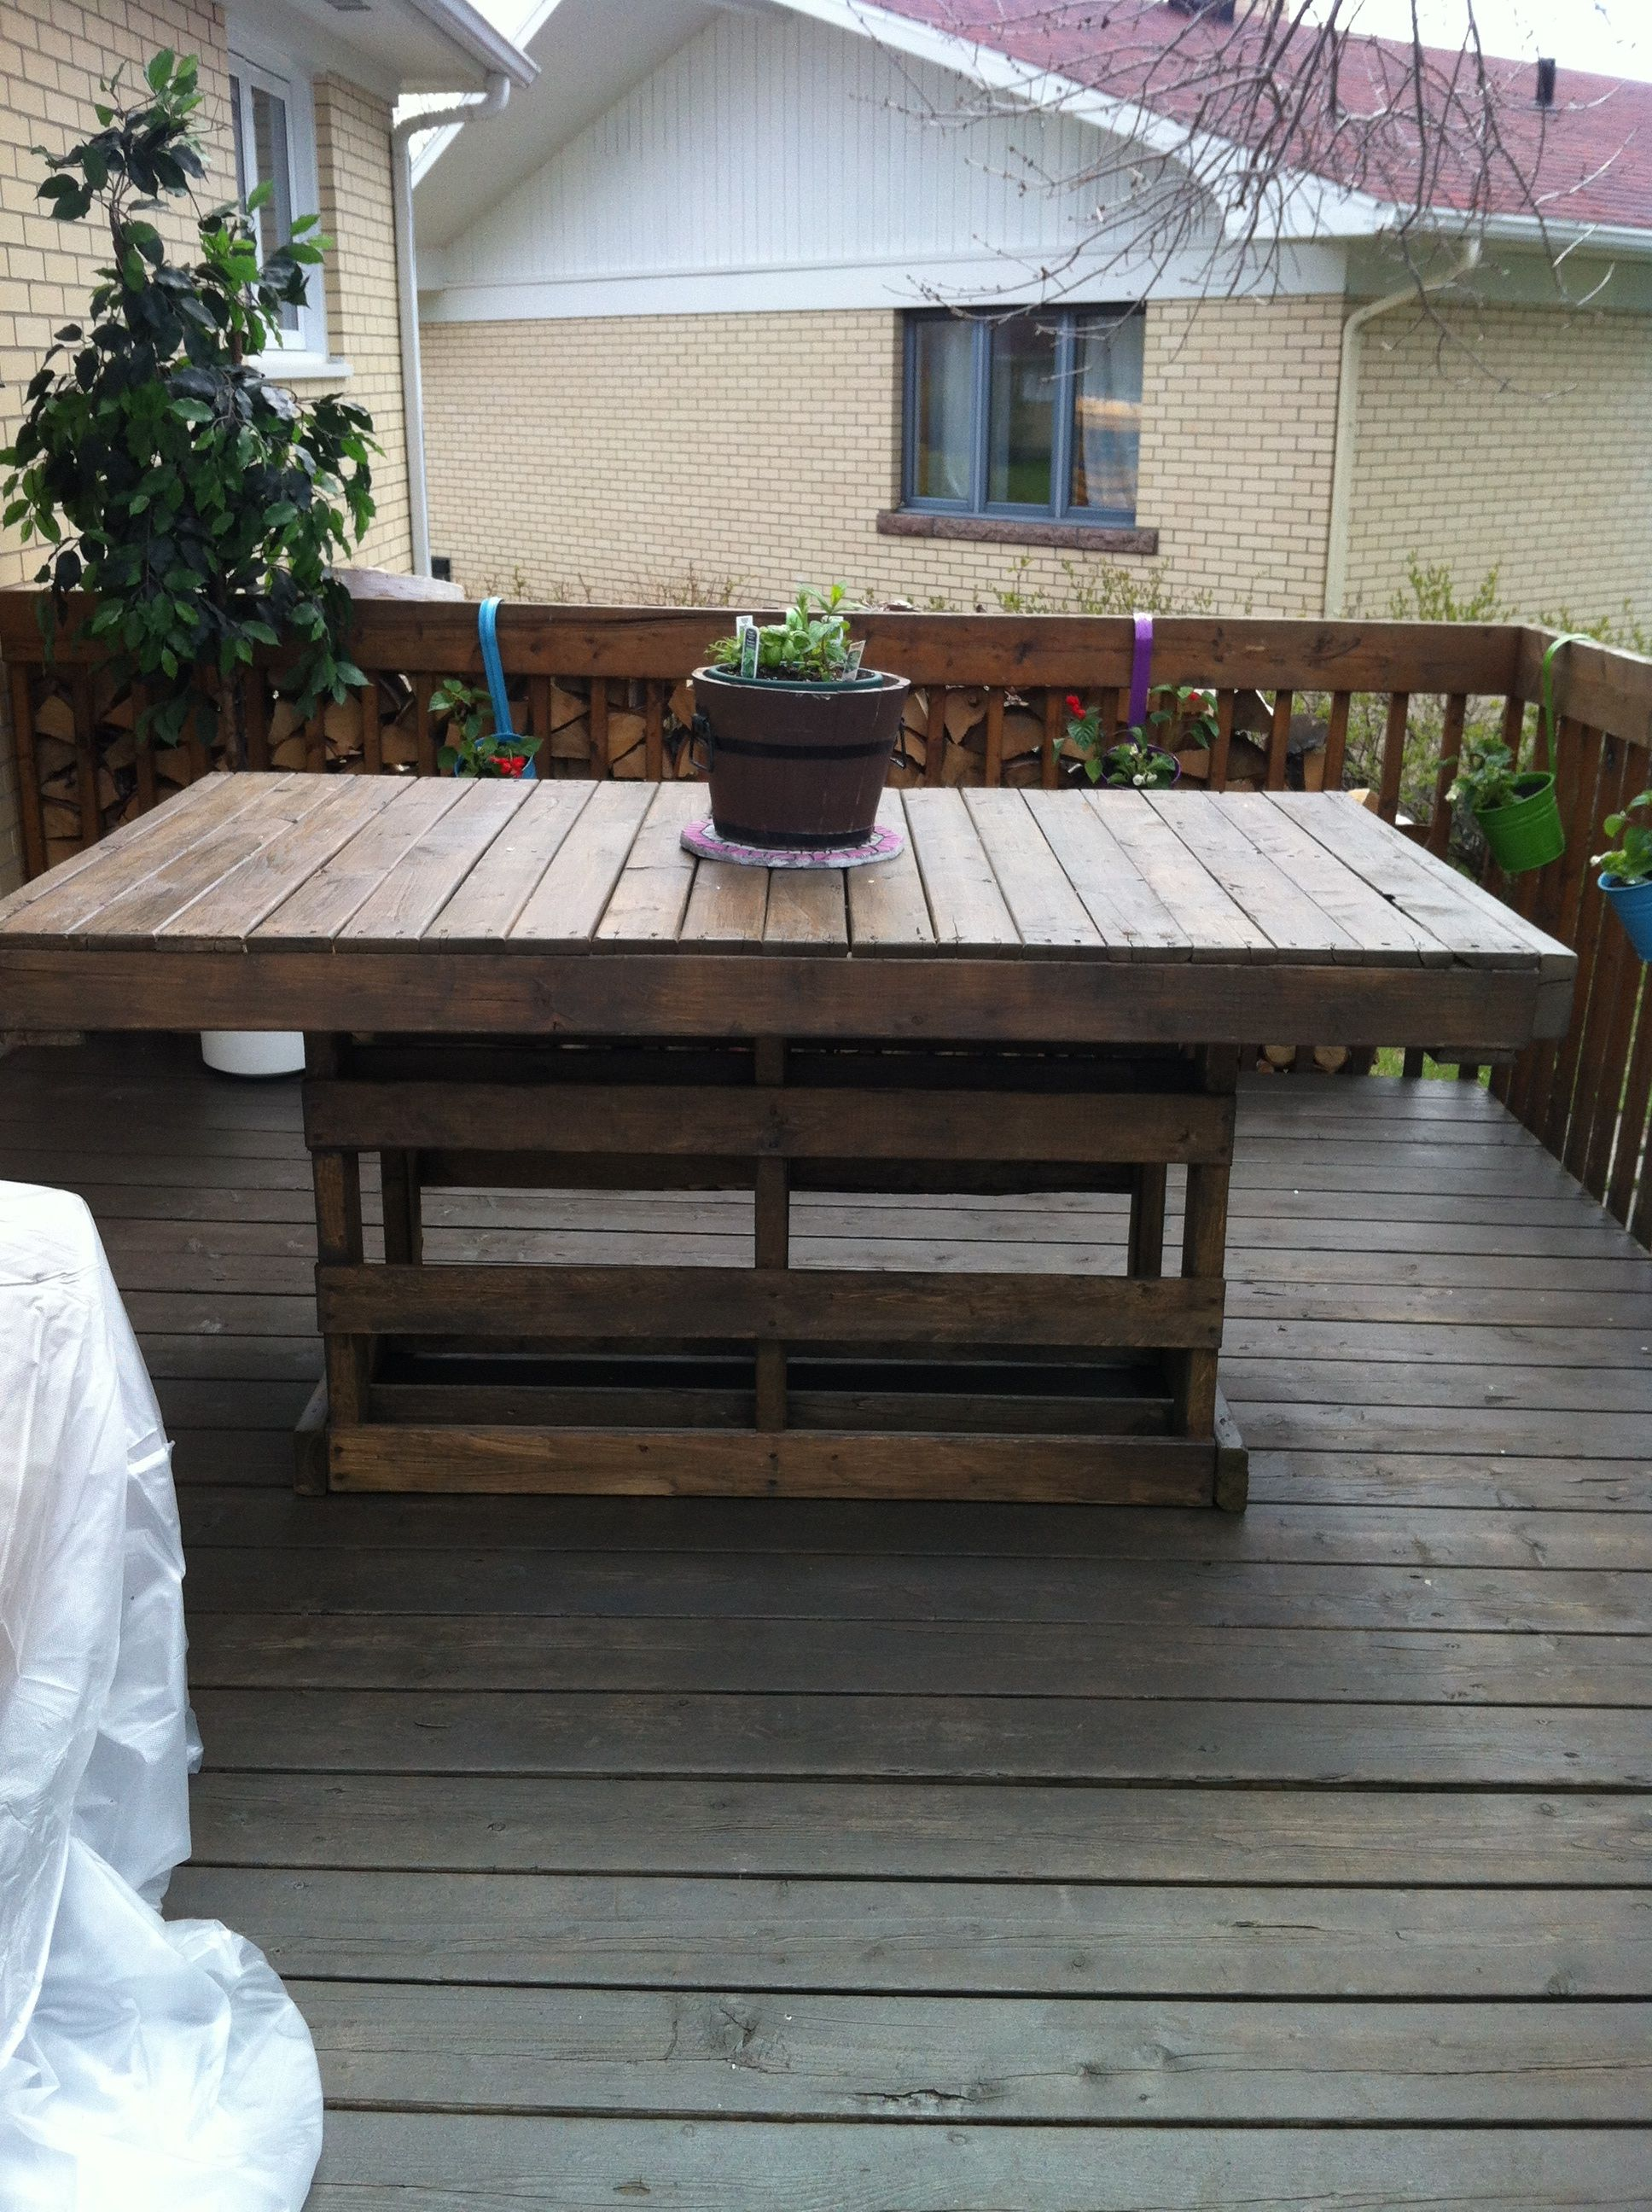 Patio Pallet Table Home Projects Wooden